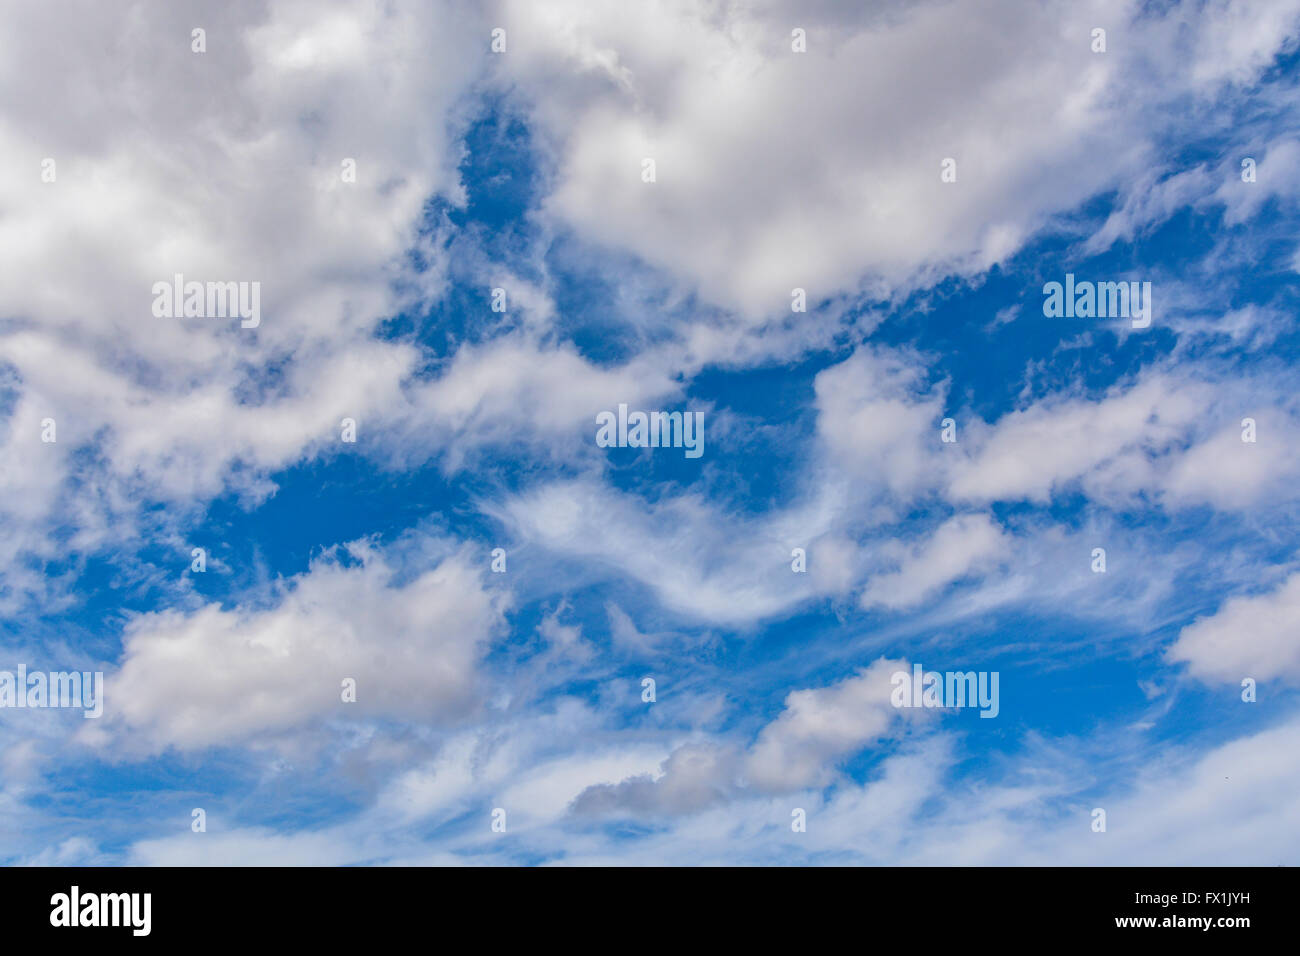 Amazing clouds at the sky - Stock Image